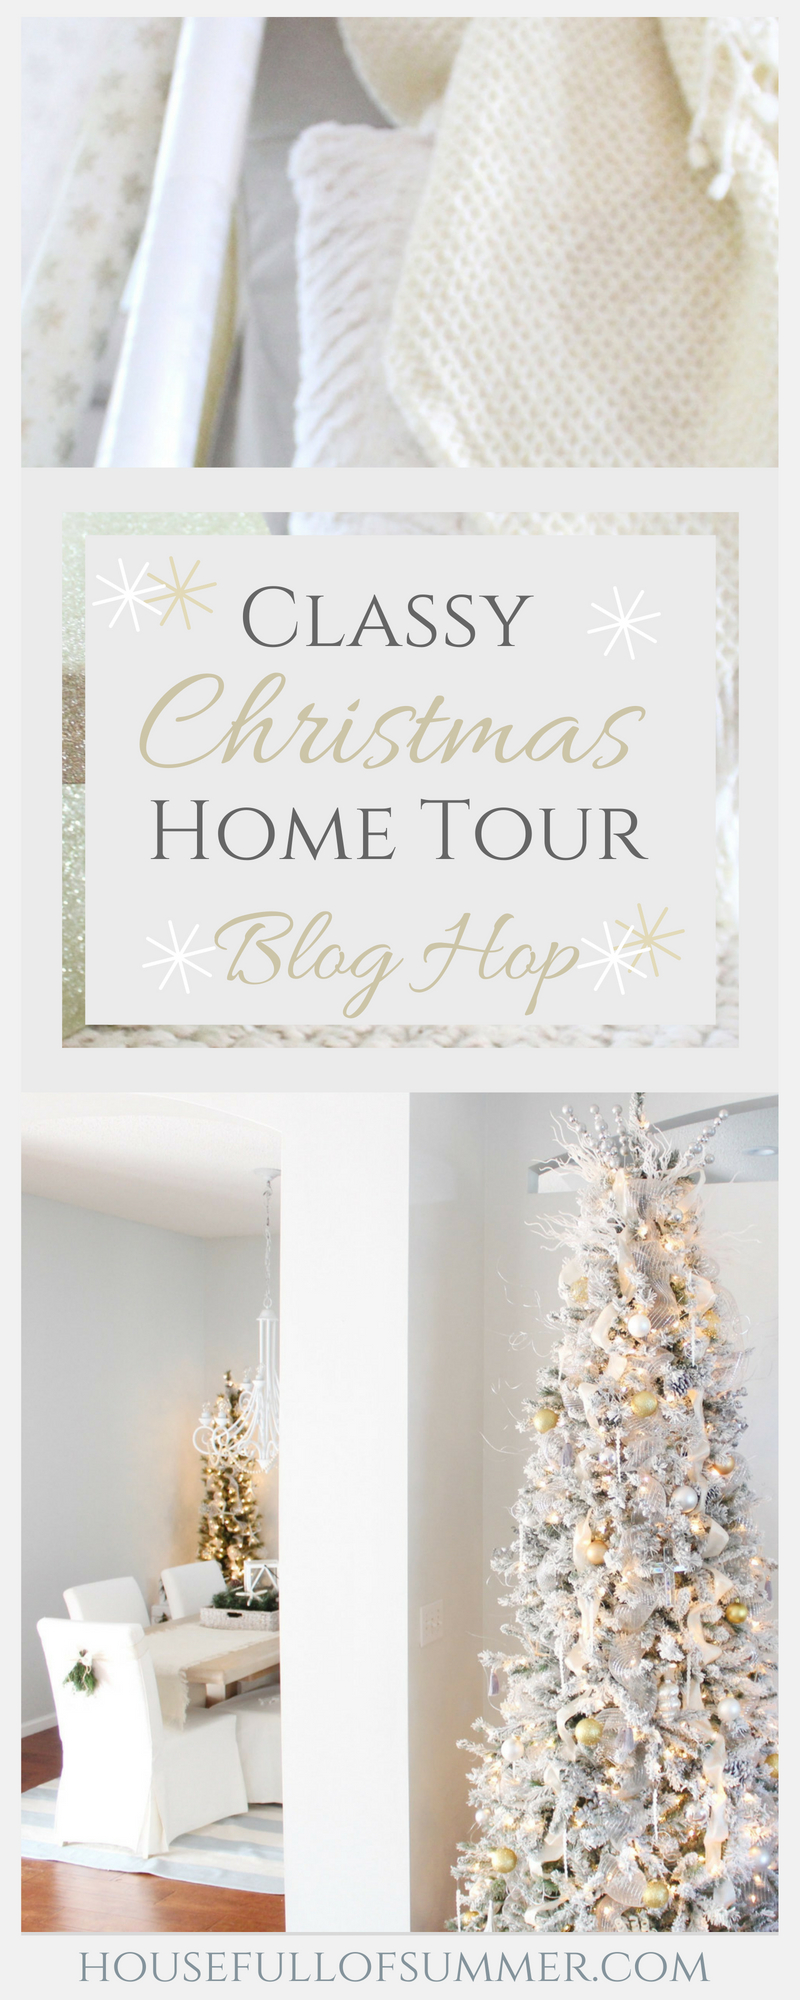 Christmas Home Tour | House Full of Summer blog hop - Cheerful Christmas Home Tour coastal christmas neutral christmas decor, holiday home tour, florida christmas style, beachy decor, foyer decor, diy Christmas #housefullofsummer #christmasdecor #coastaldecor